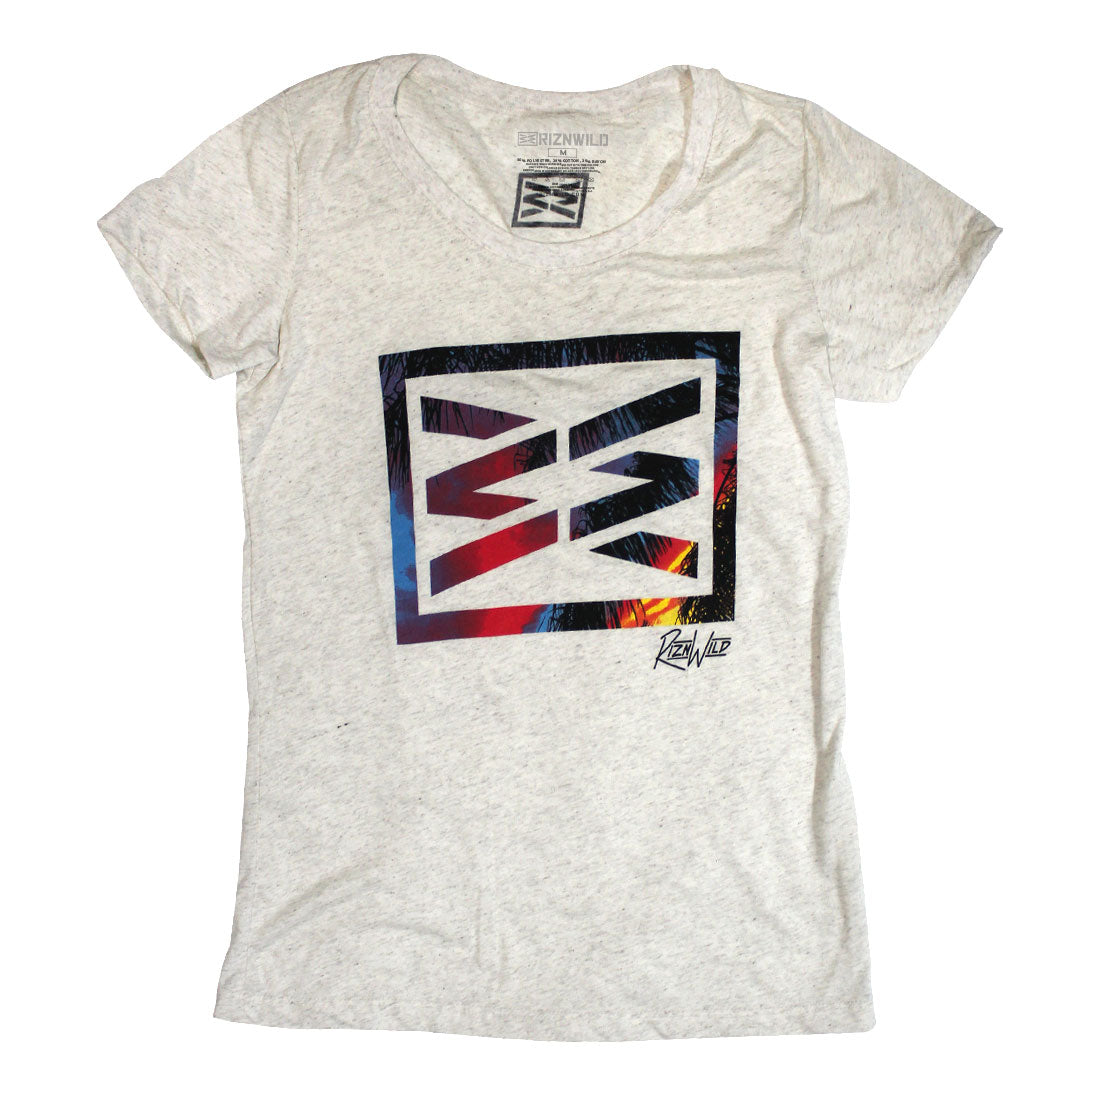 RIZNWILD | Girls soft tee in the color oatmeal bright color screen print on the front